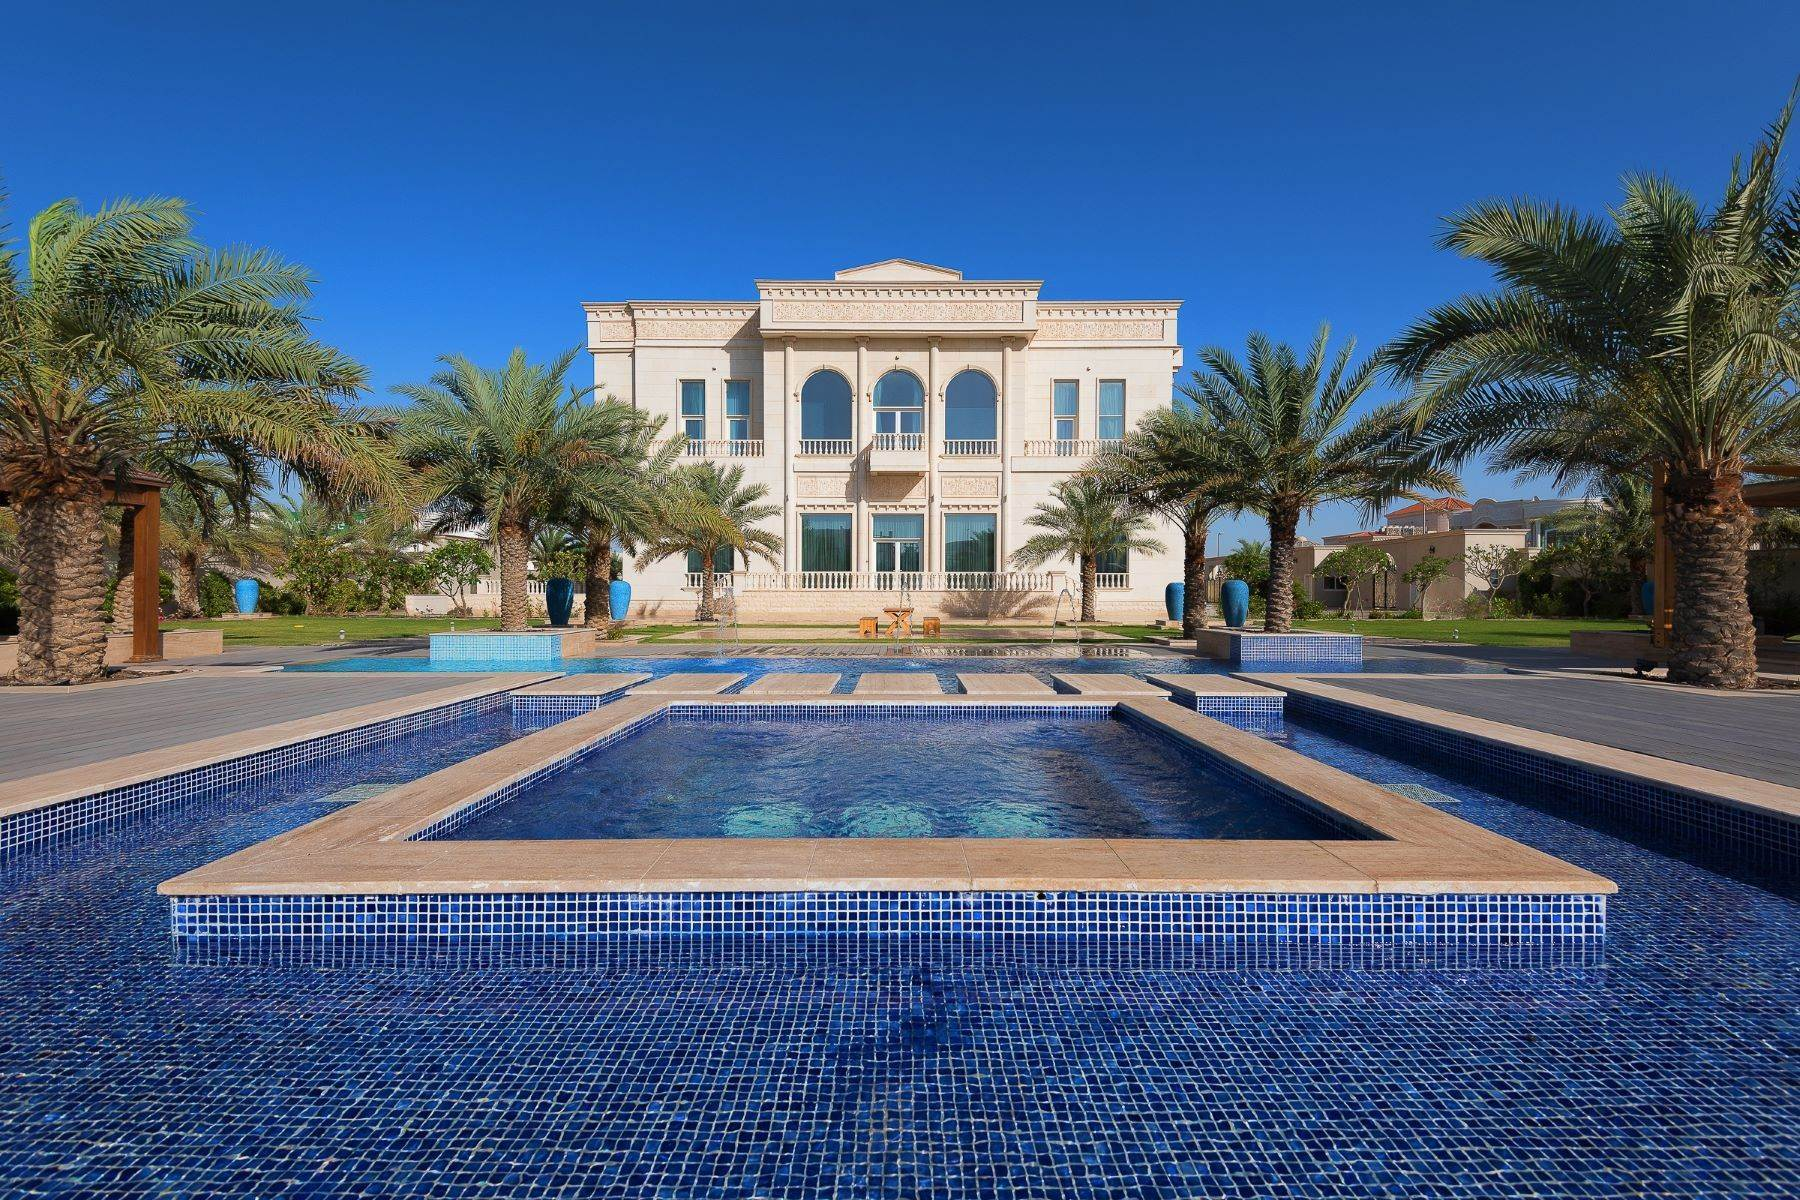 Single Family Homes for Sale at Ultra luxurious Jumeirah Palace villa Dubai, Dubai United Arab Emirates